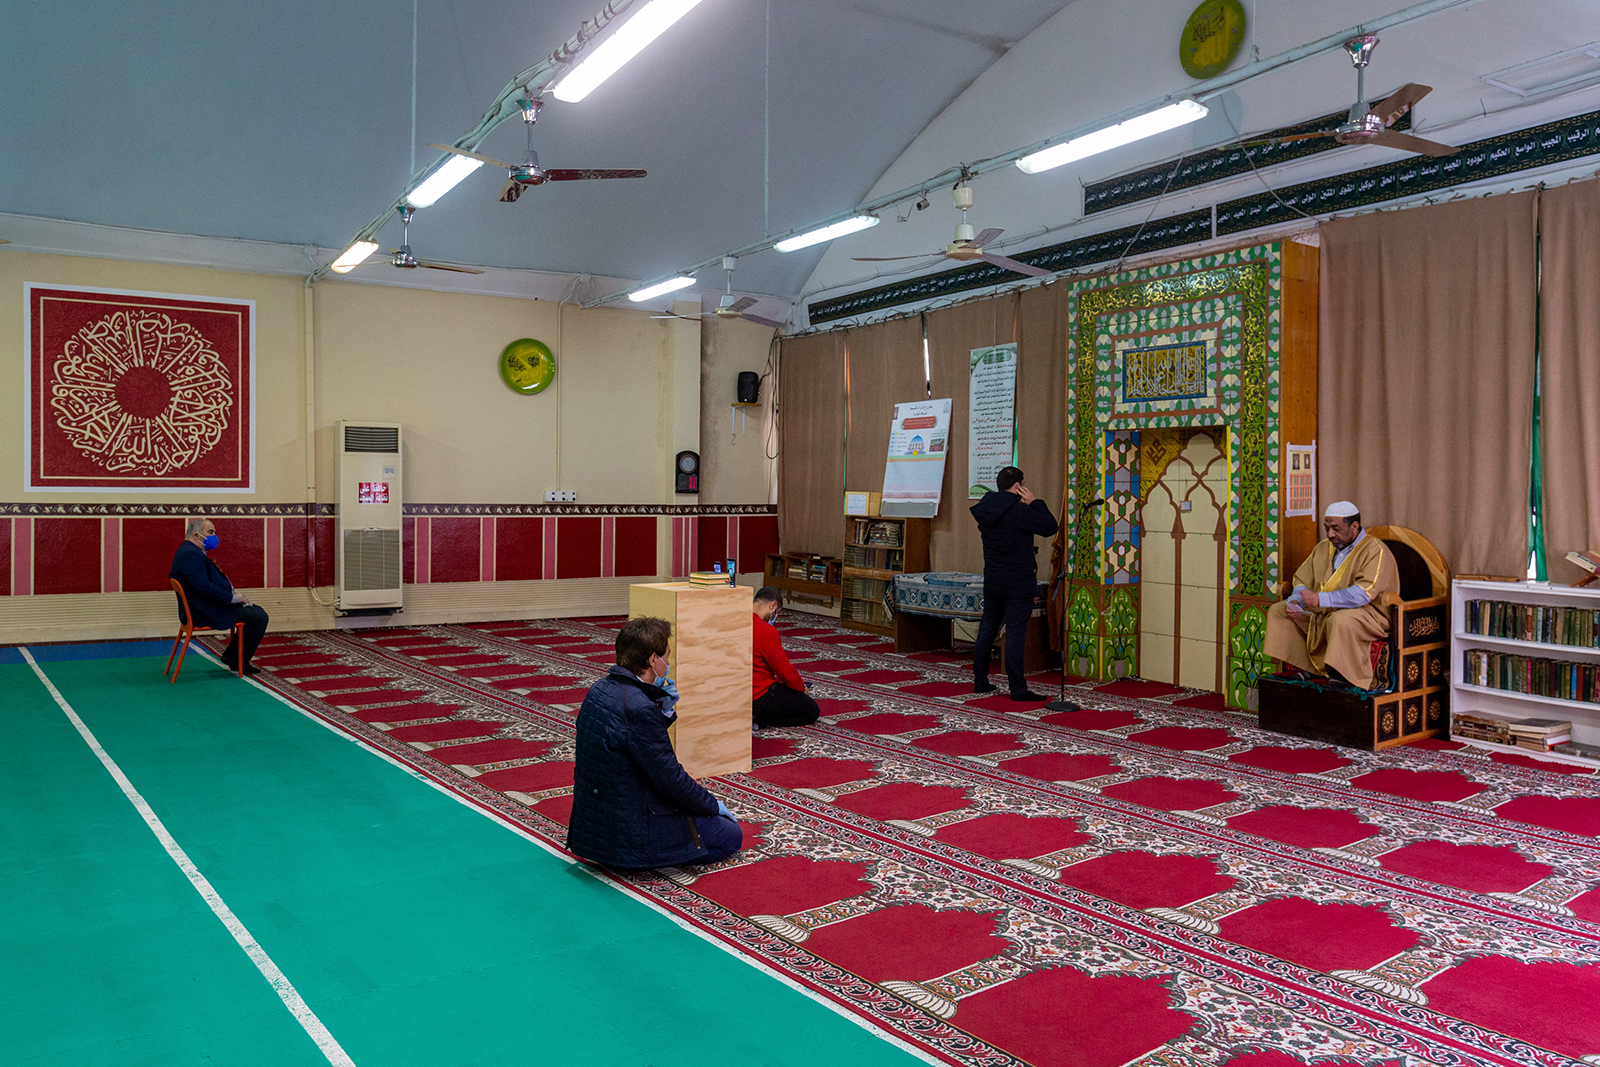 An imam holds the Friday sermon during Ramadan in a near empty mosque in Milan, Italy on May 1.